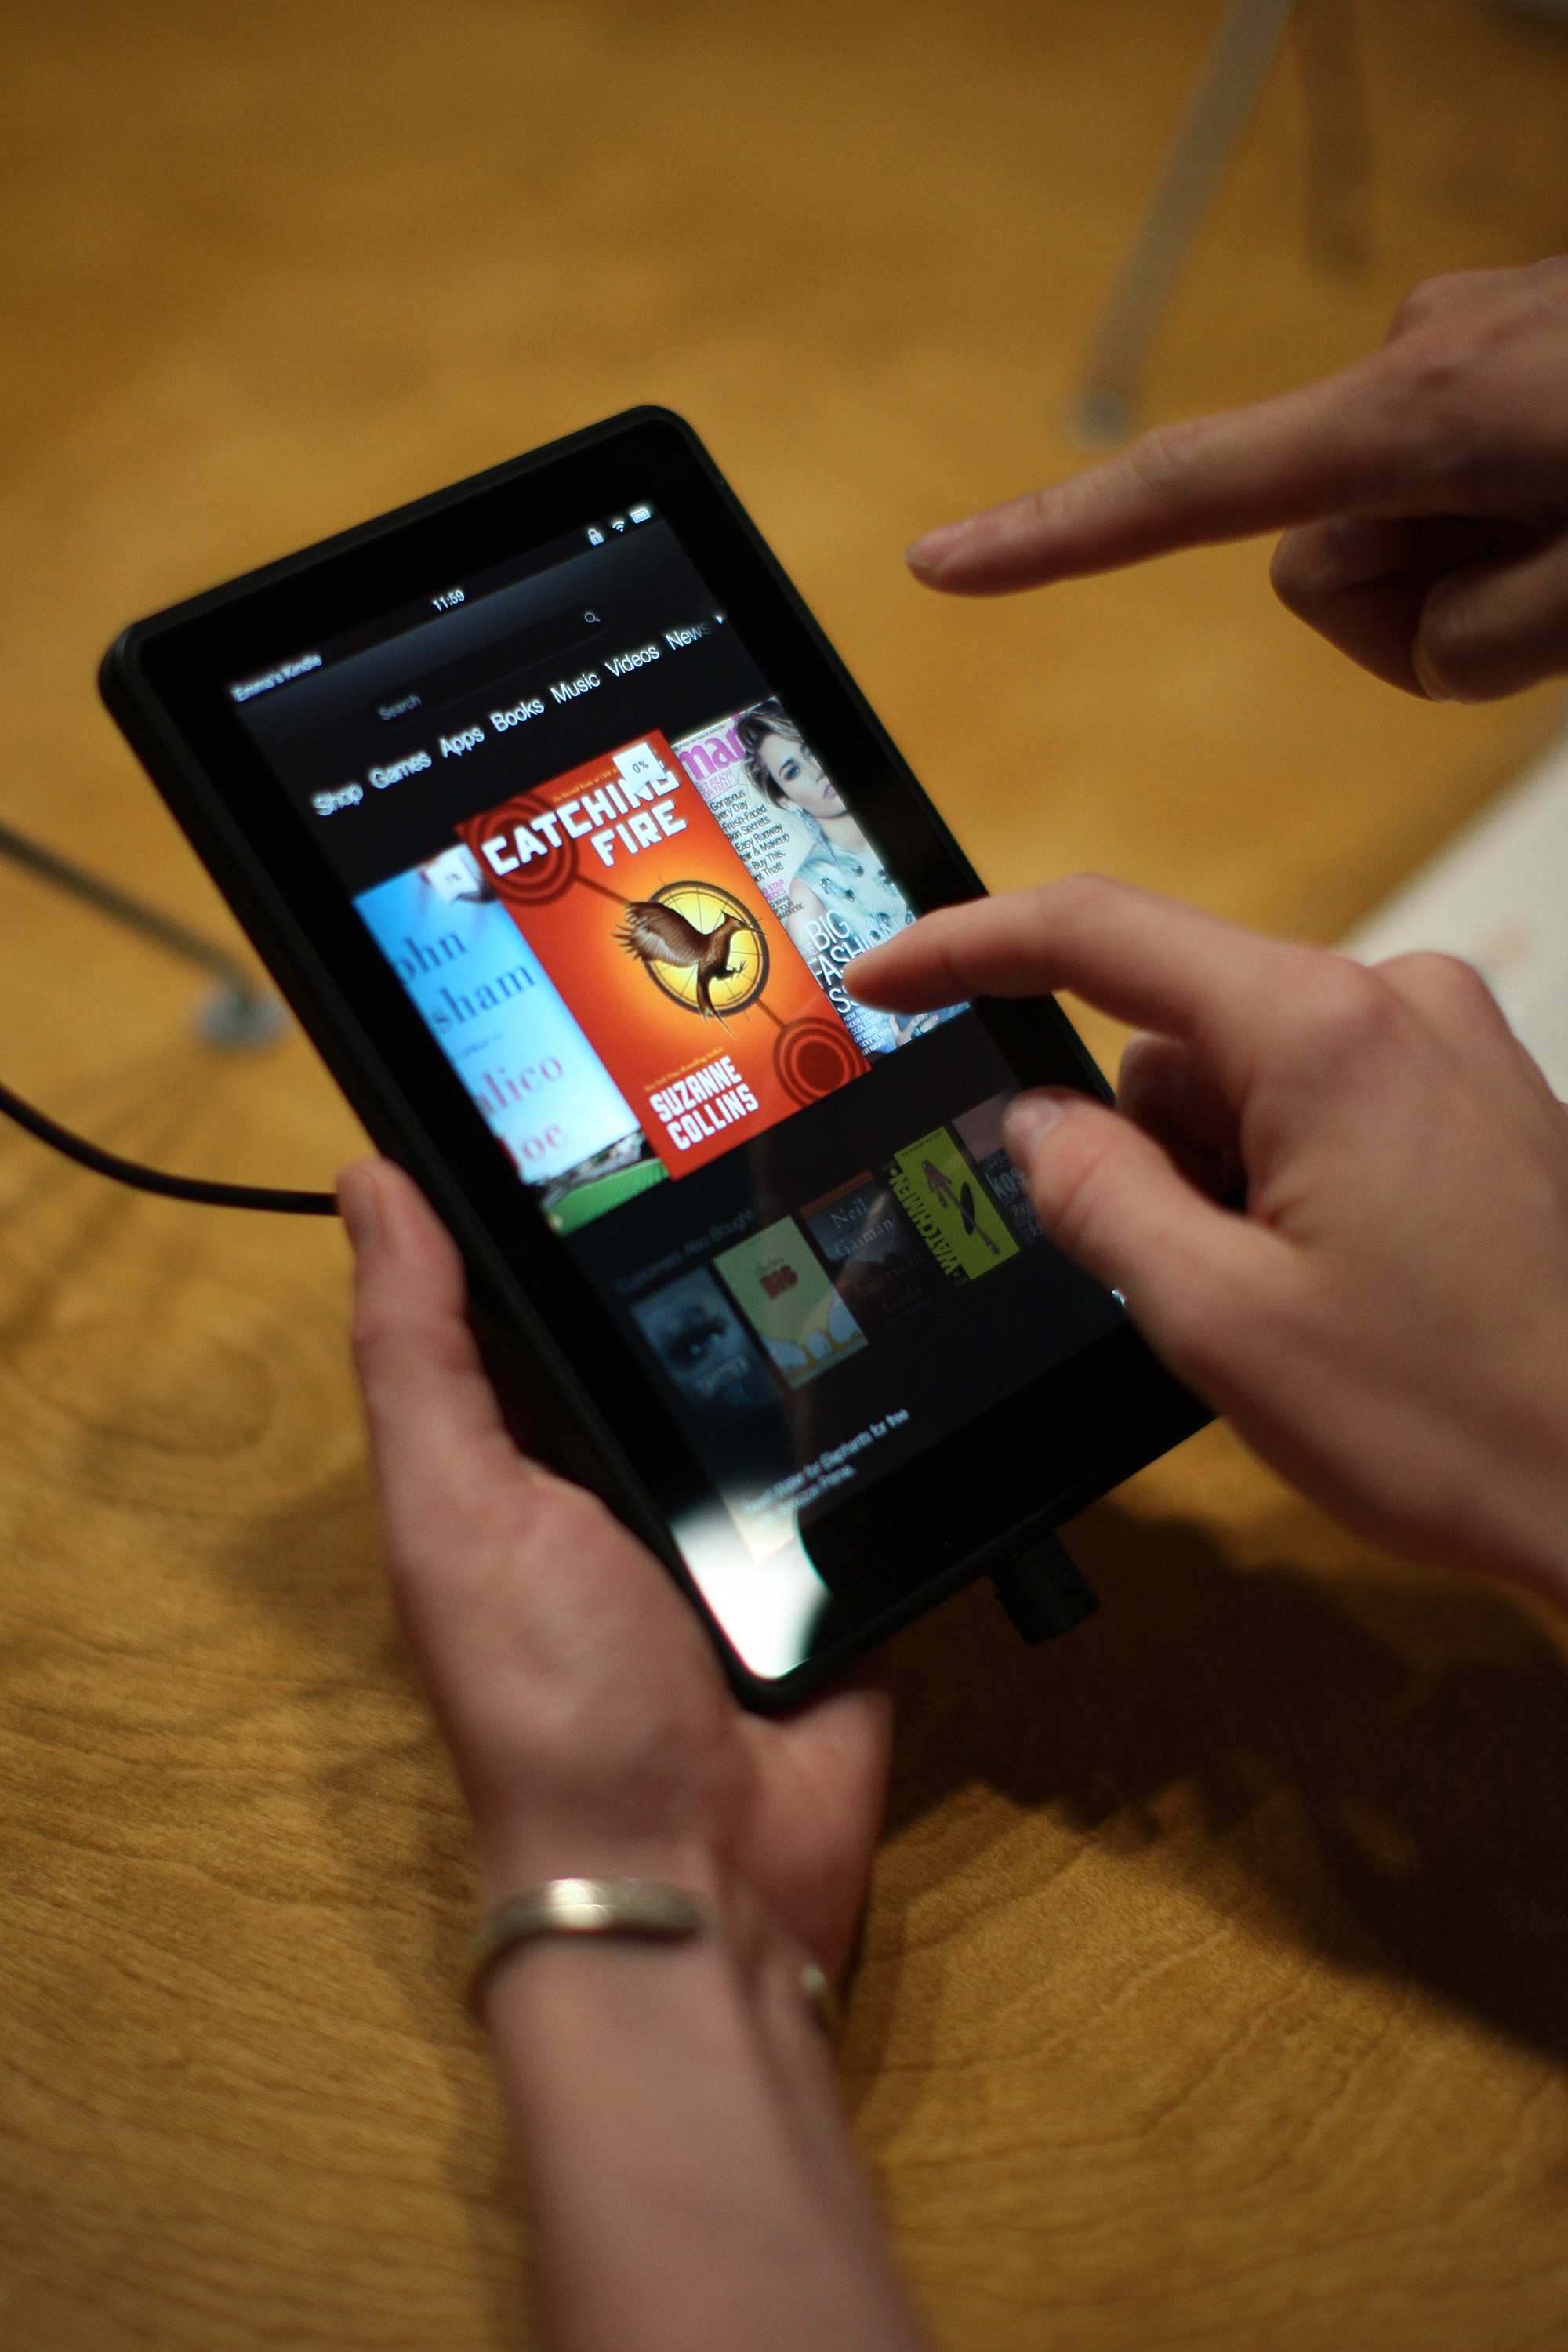 People try out a new Kindle fire reading device at a press conference on September 6, 2012 in Santa Monica, California.